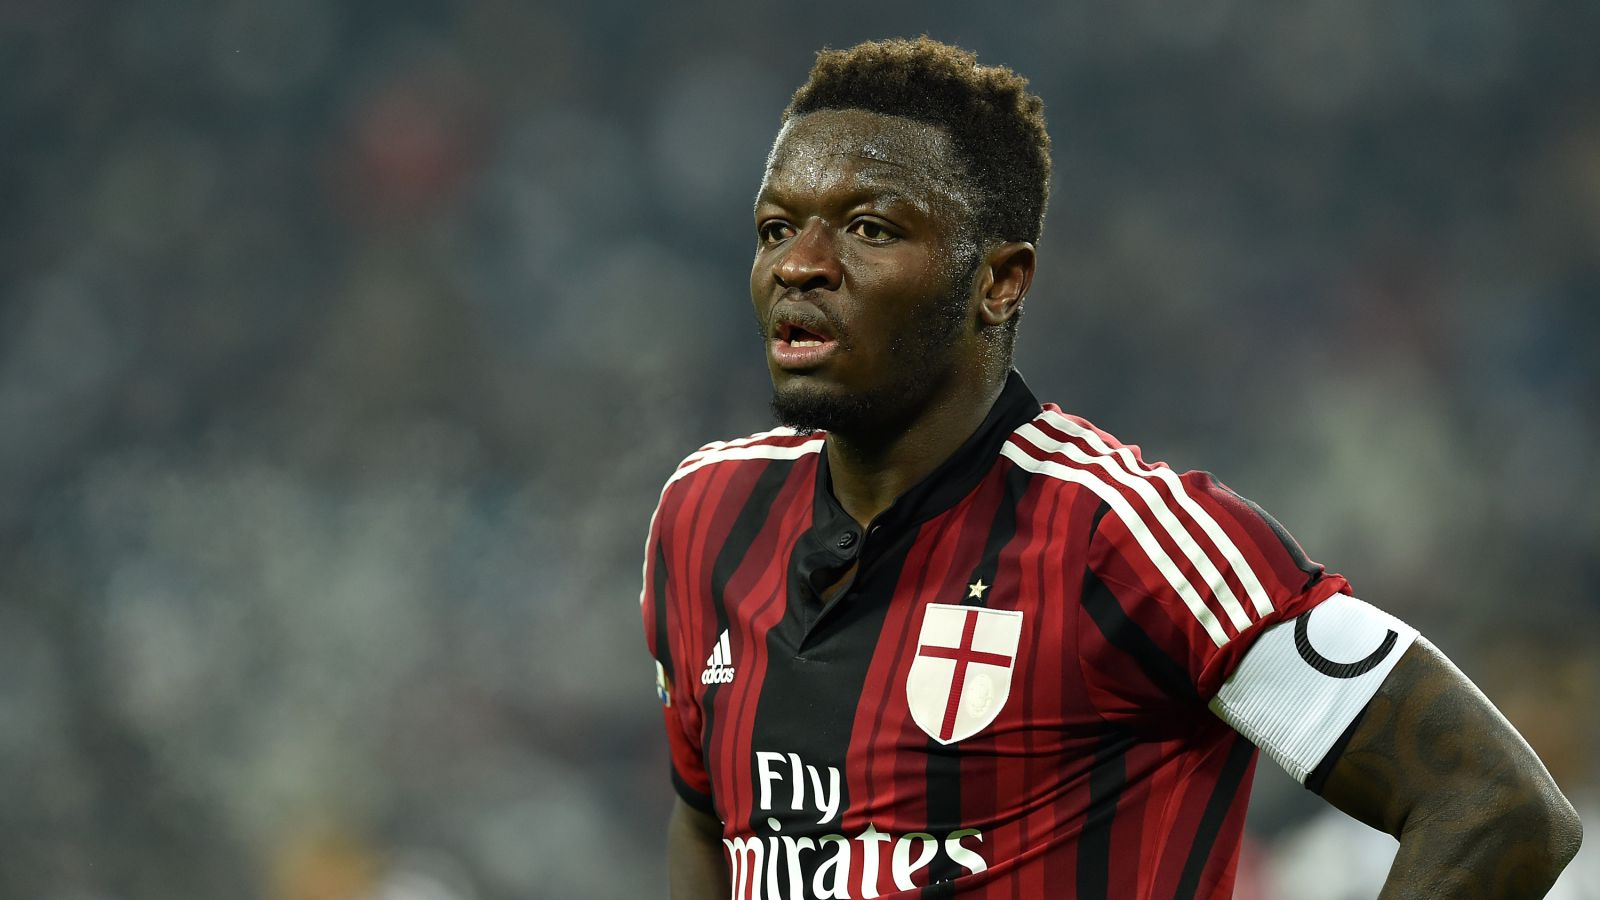 Sulley Muntari agrees deal with Italian Serie A side Pescara; set to train today